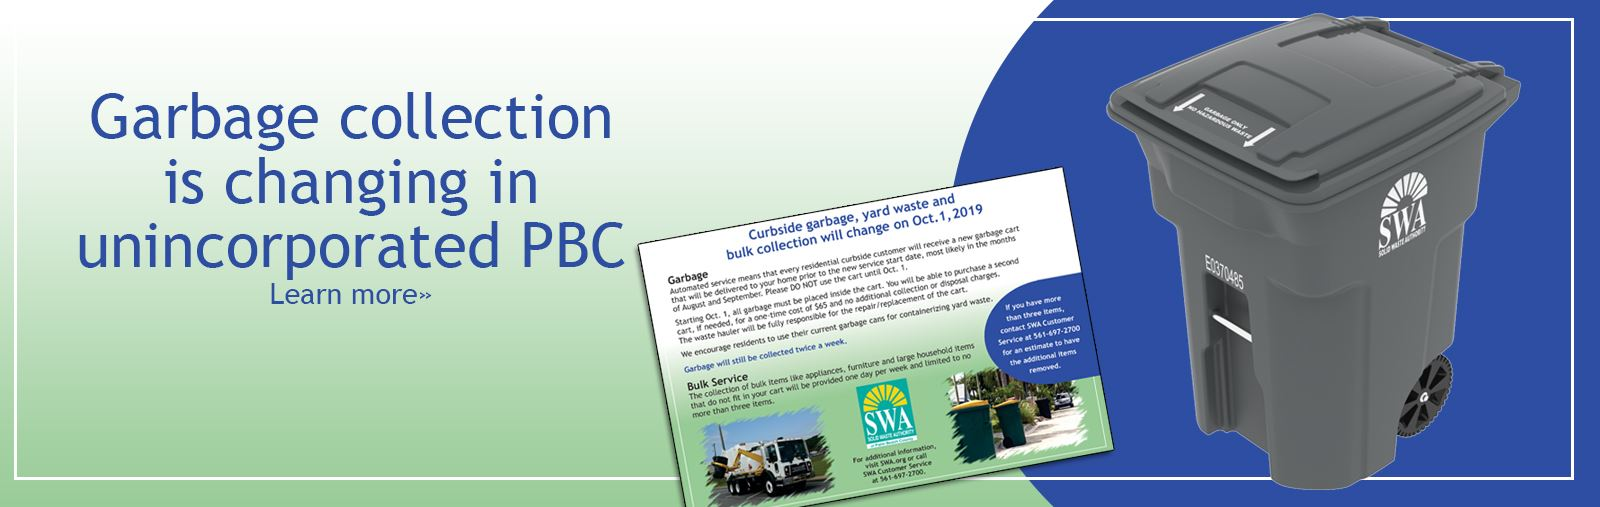 Garbage collection is changing in unincorporated PBC. Learn more.